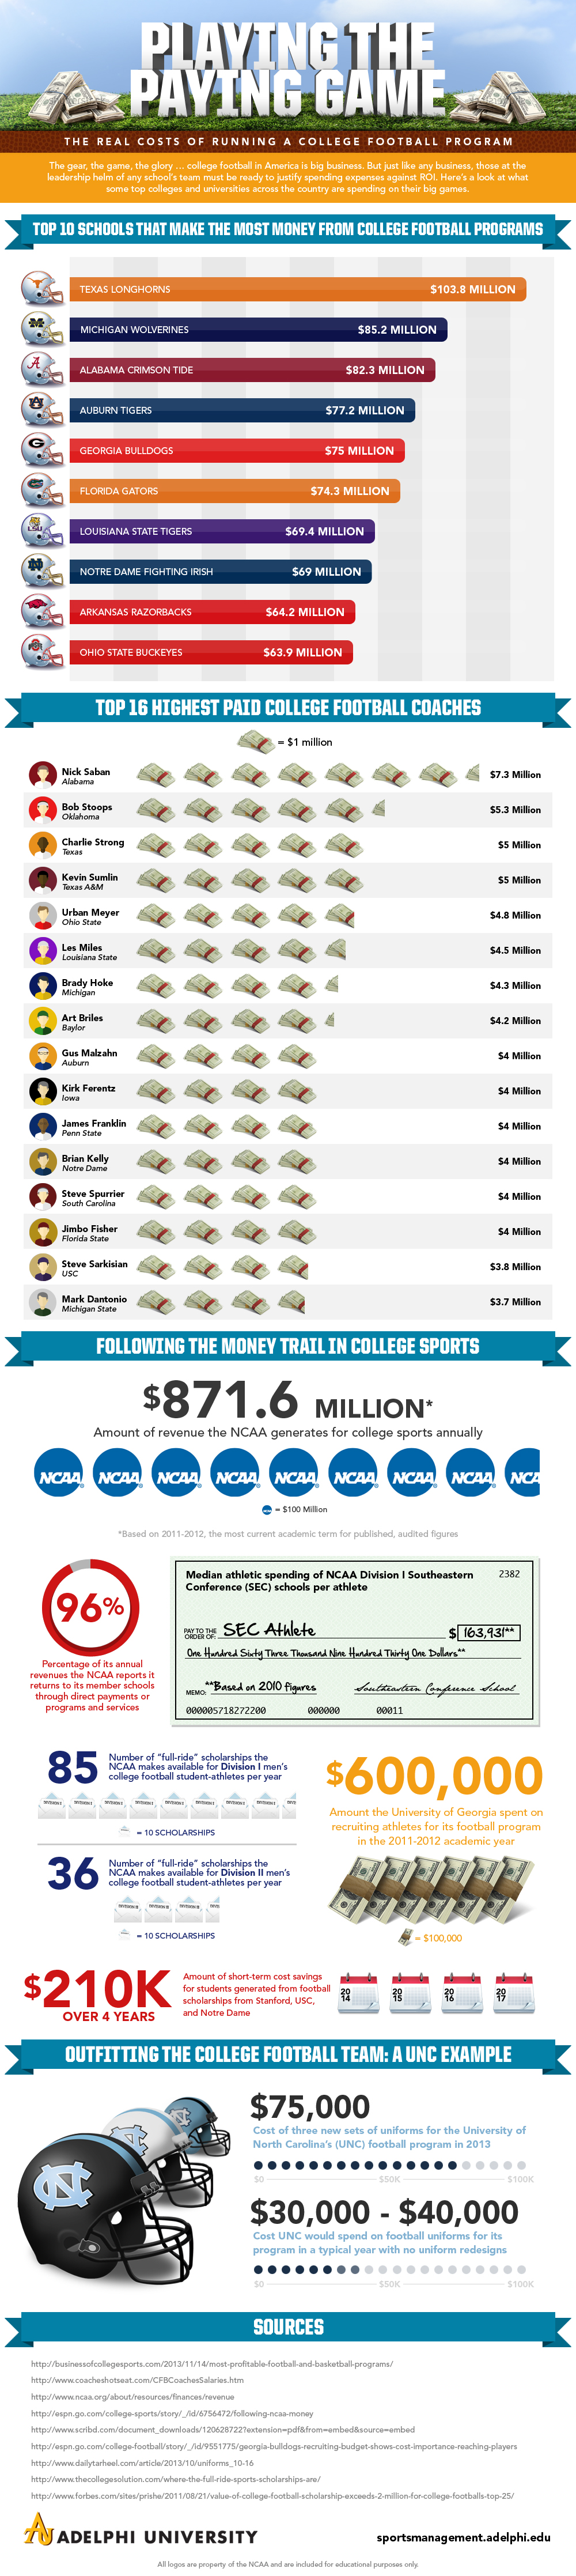 The Big Business Behind College Football [Infographic]